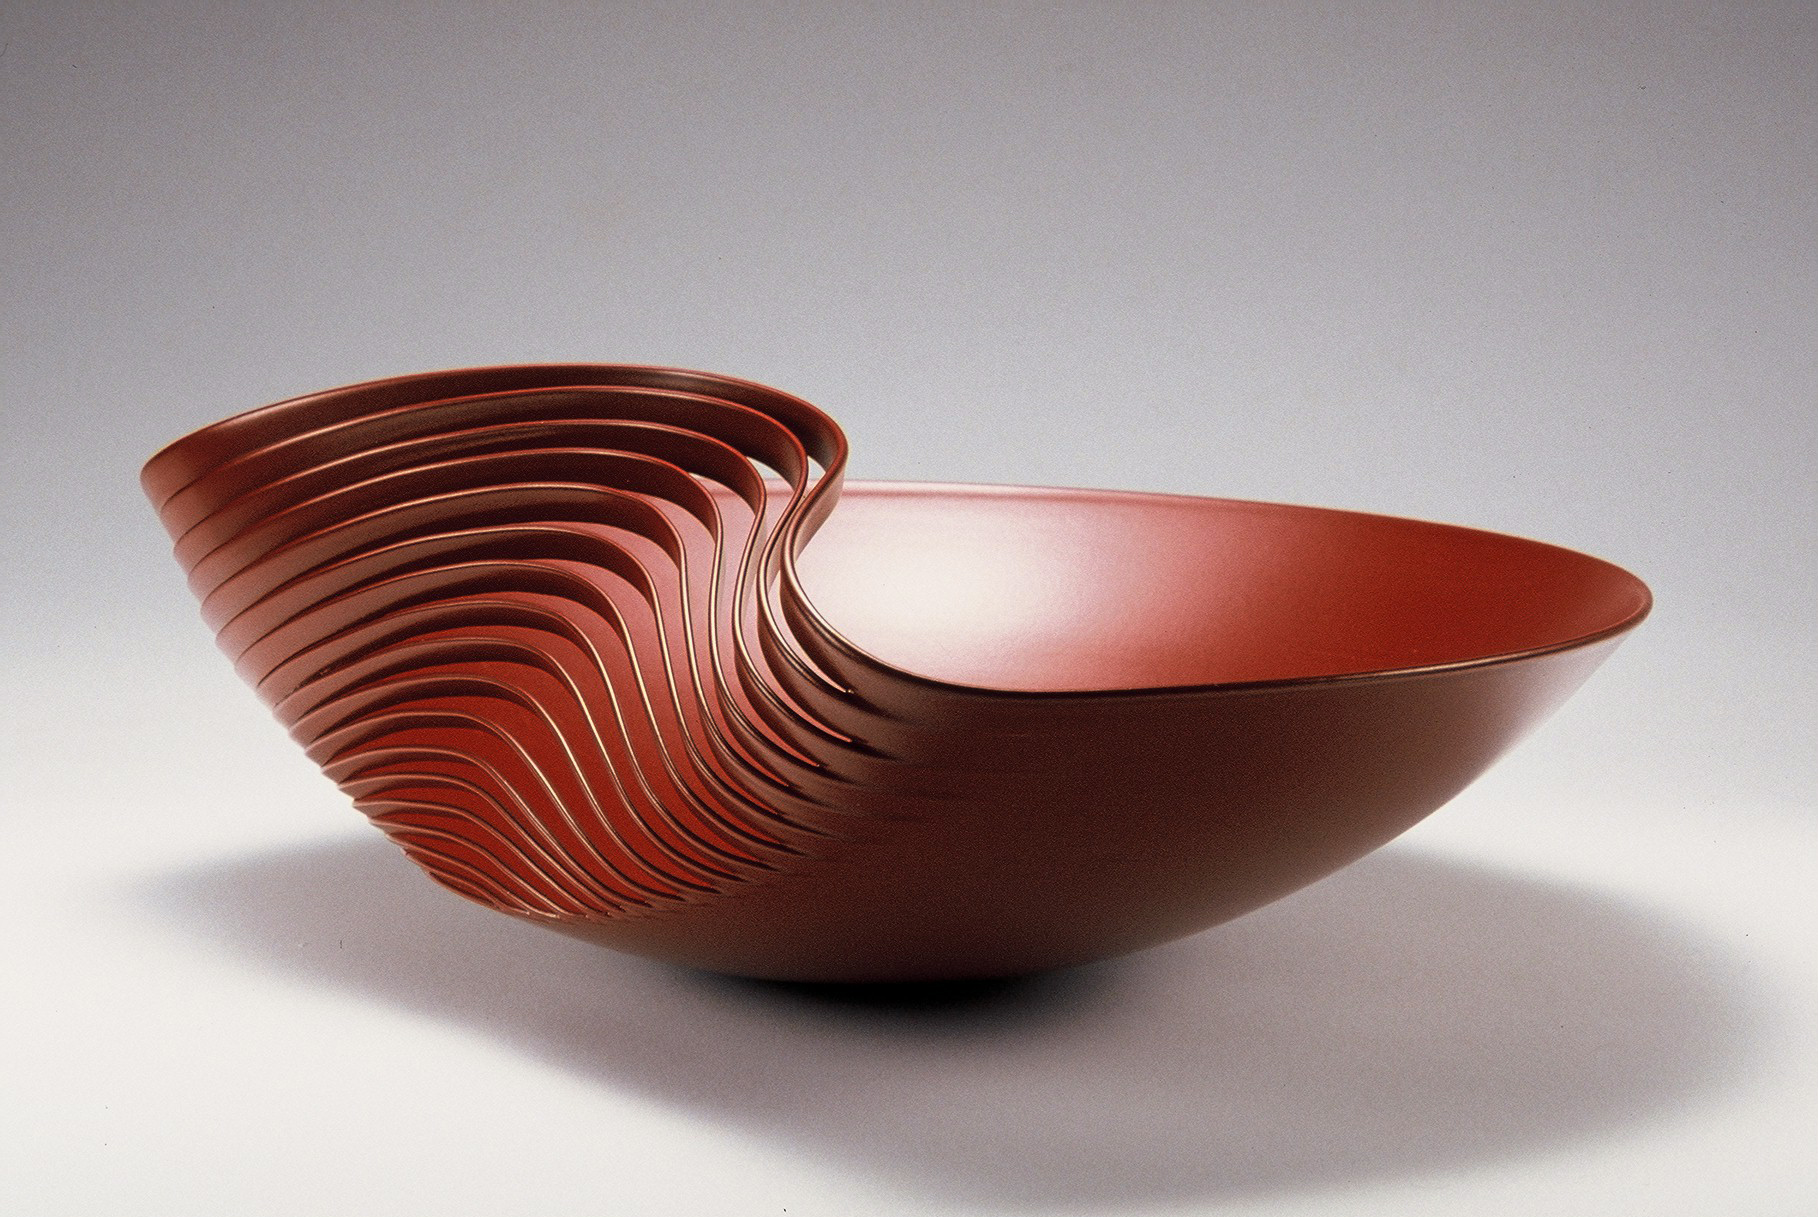 'Dented Bowl' in powder coated copper